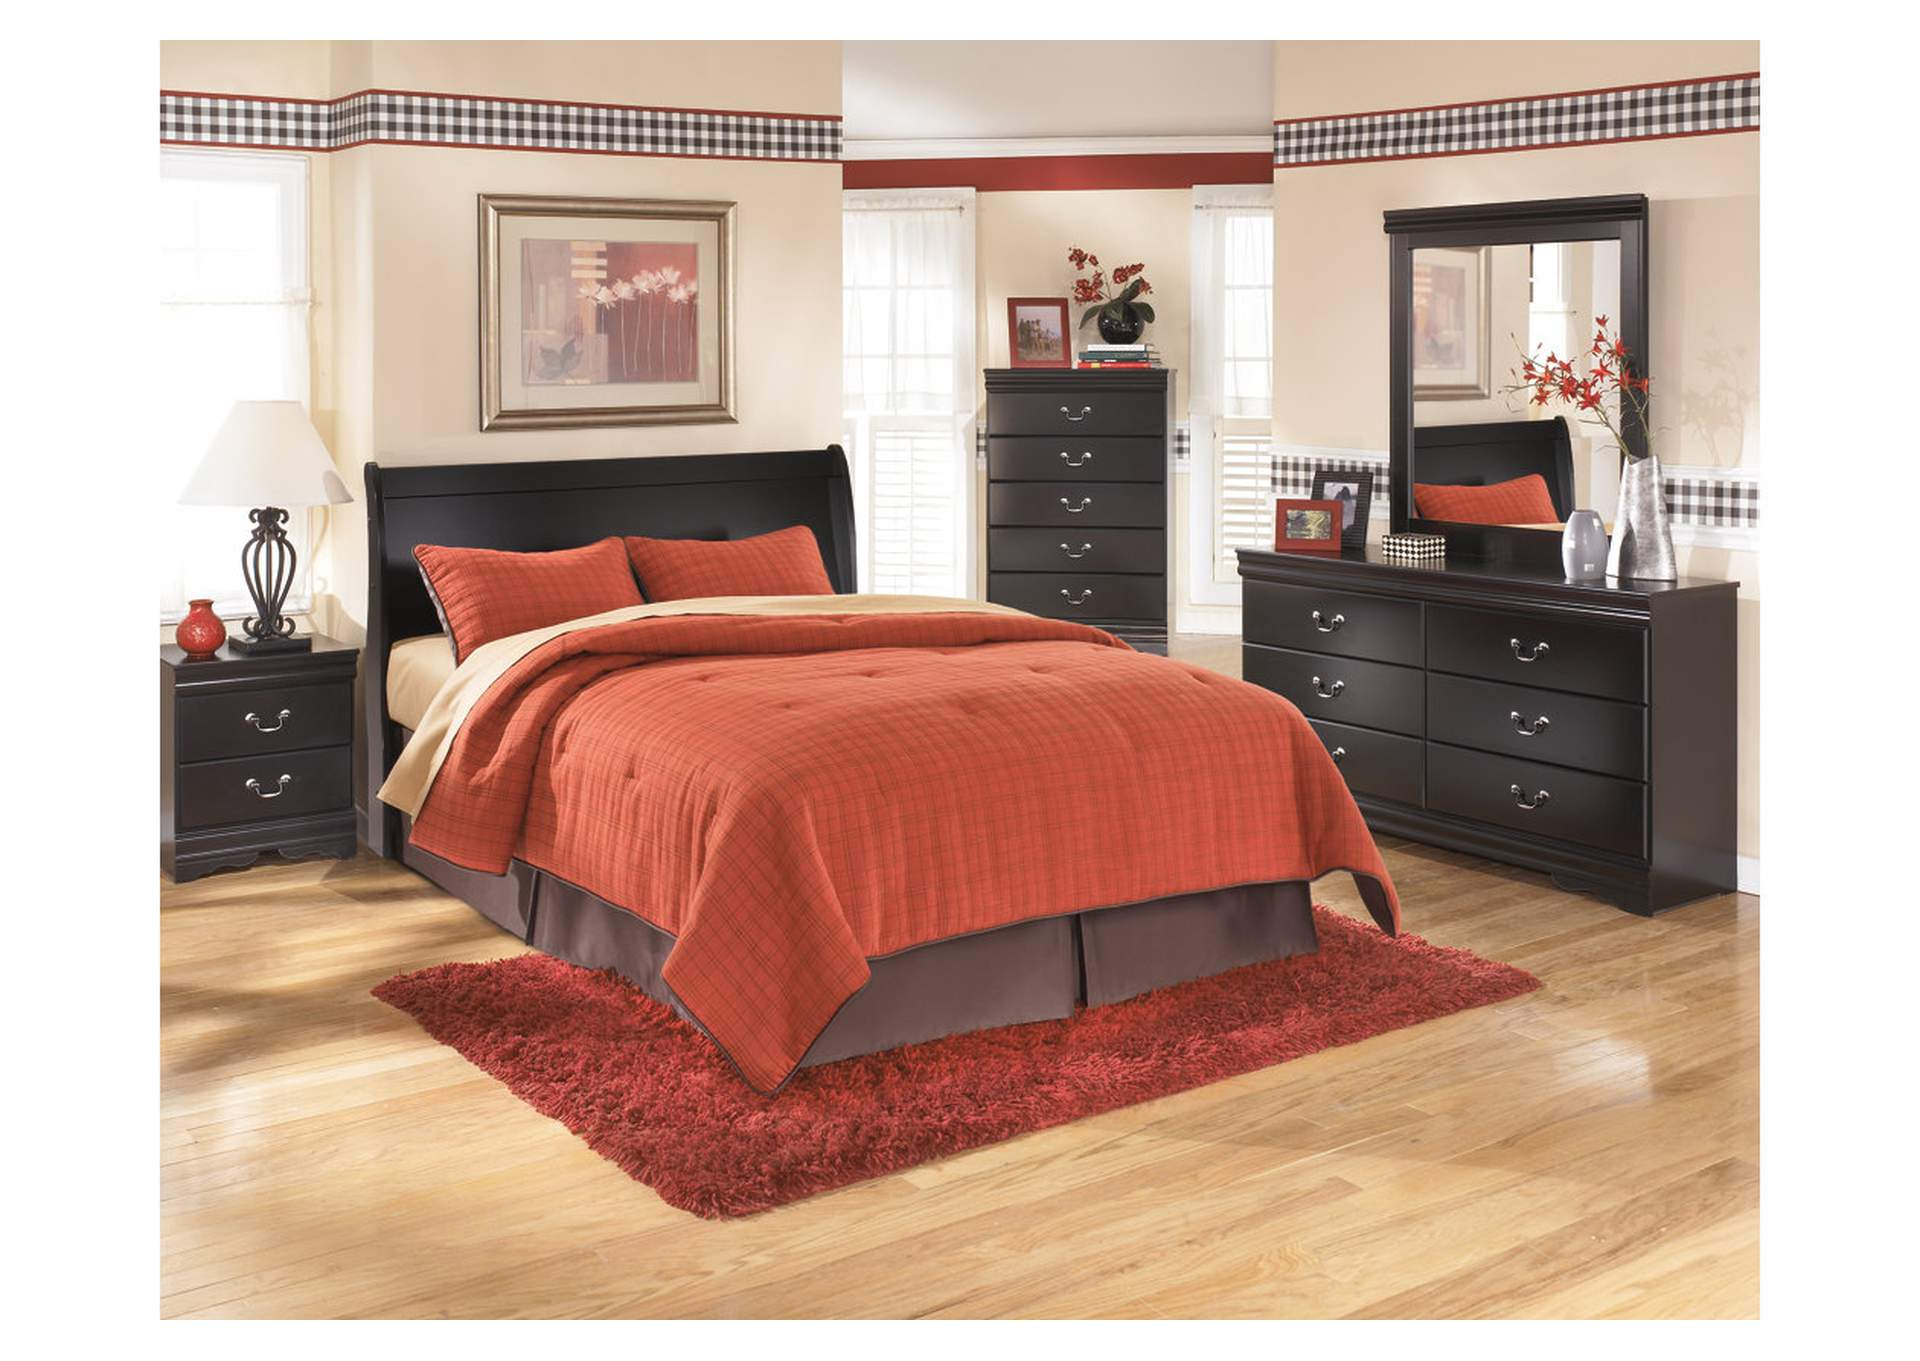 Huey Vineyard Queen Sleigh Headboard w/Dresser, Mirror & Drawer Chest,Signature Design By Ashley